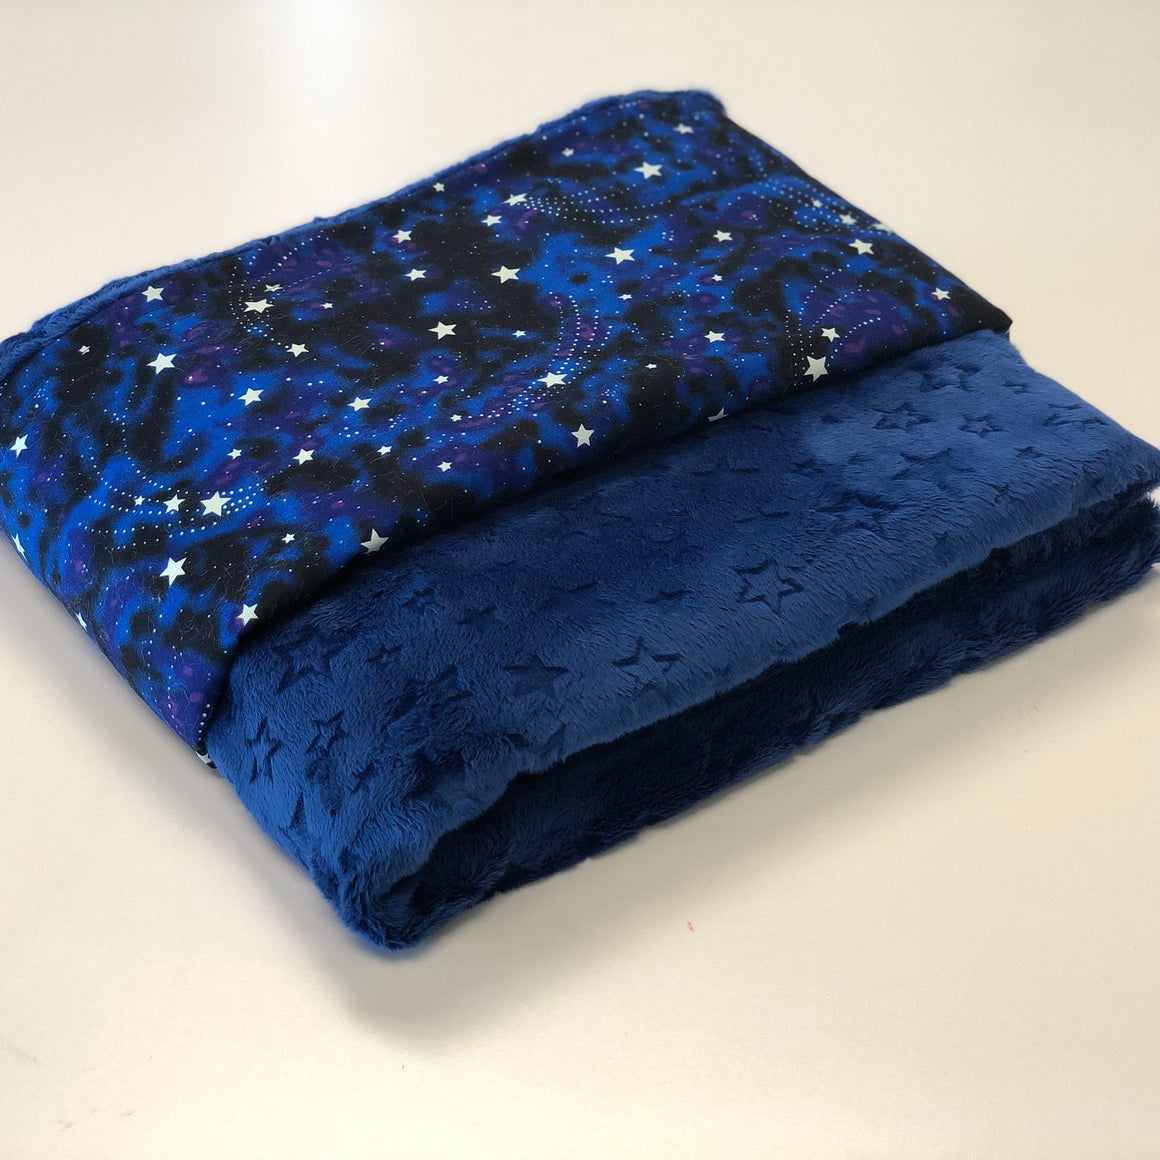 Komfy Couture Weighted Blankets Glow in the Dark Luxury Weighted Blanket - Glass beads